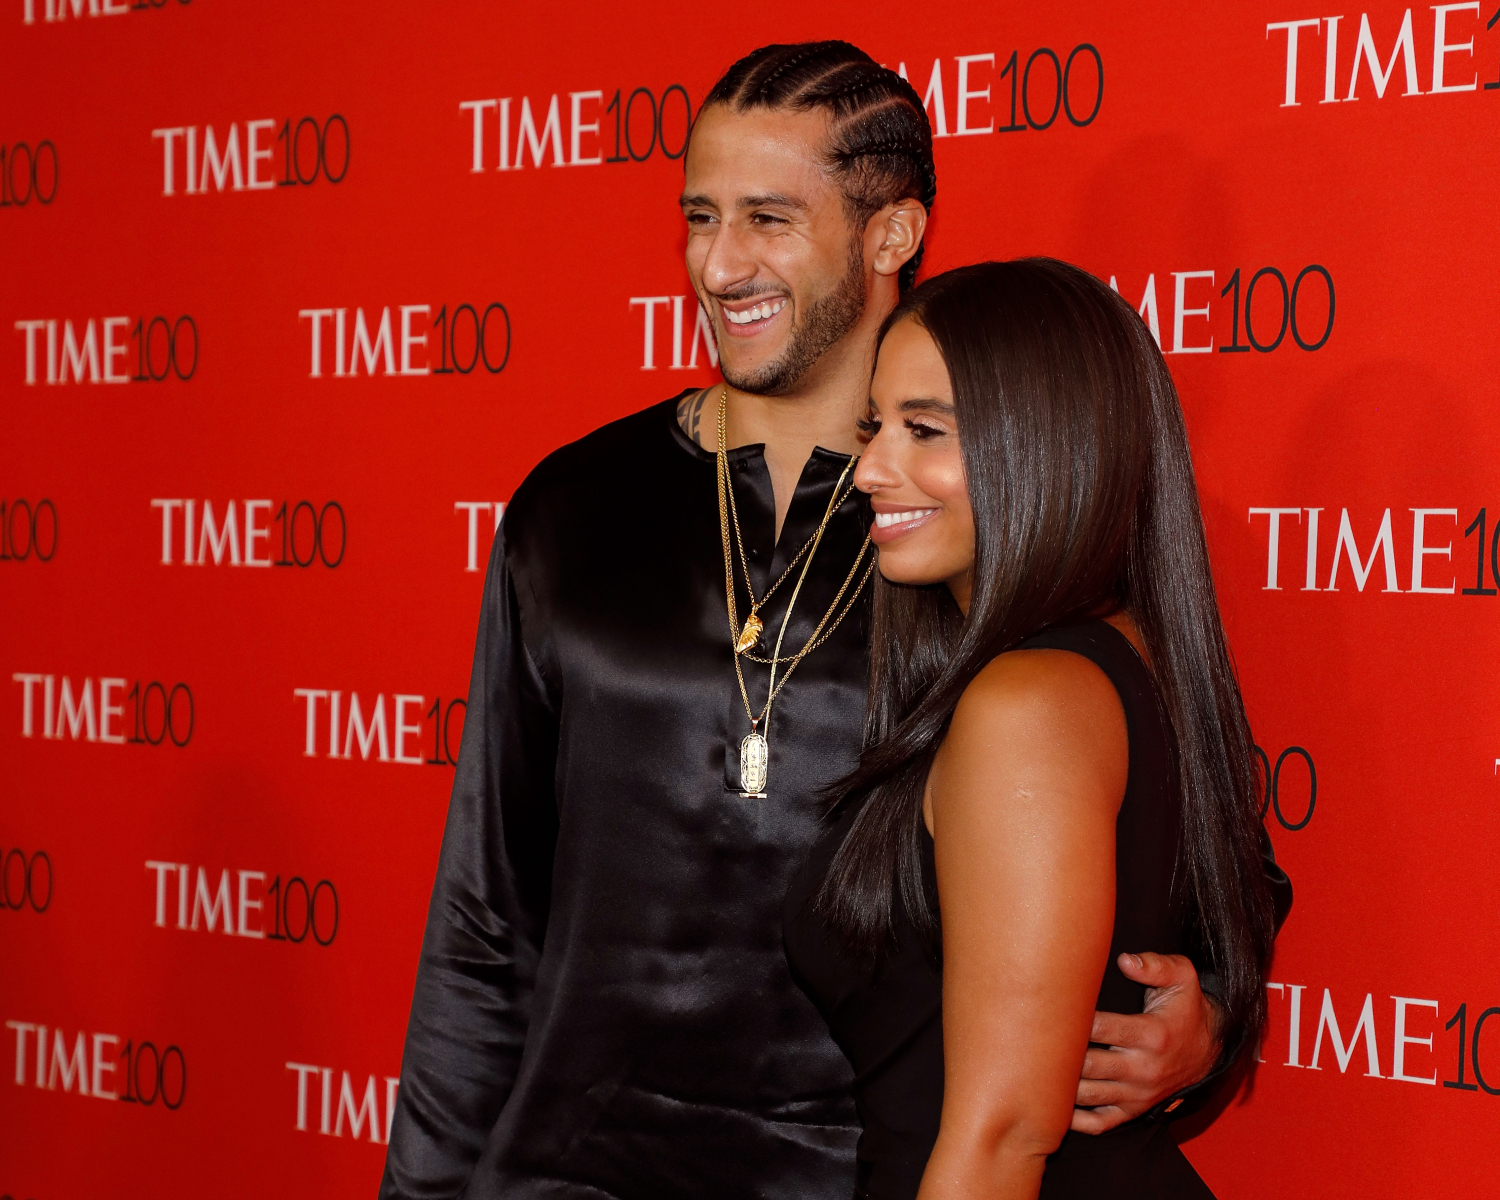 Big news was announced on Monday about a new deal that Colin Kaepernick is a part of. His girlfriend Nessa took to social media to react.